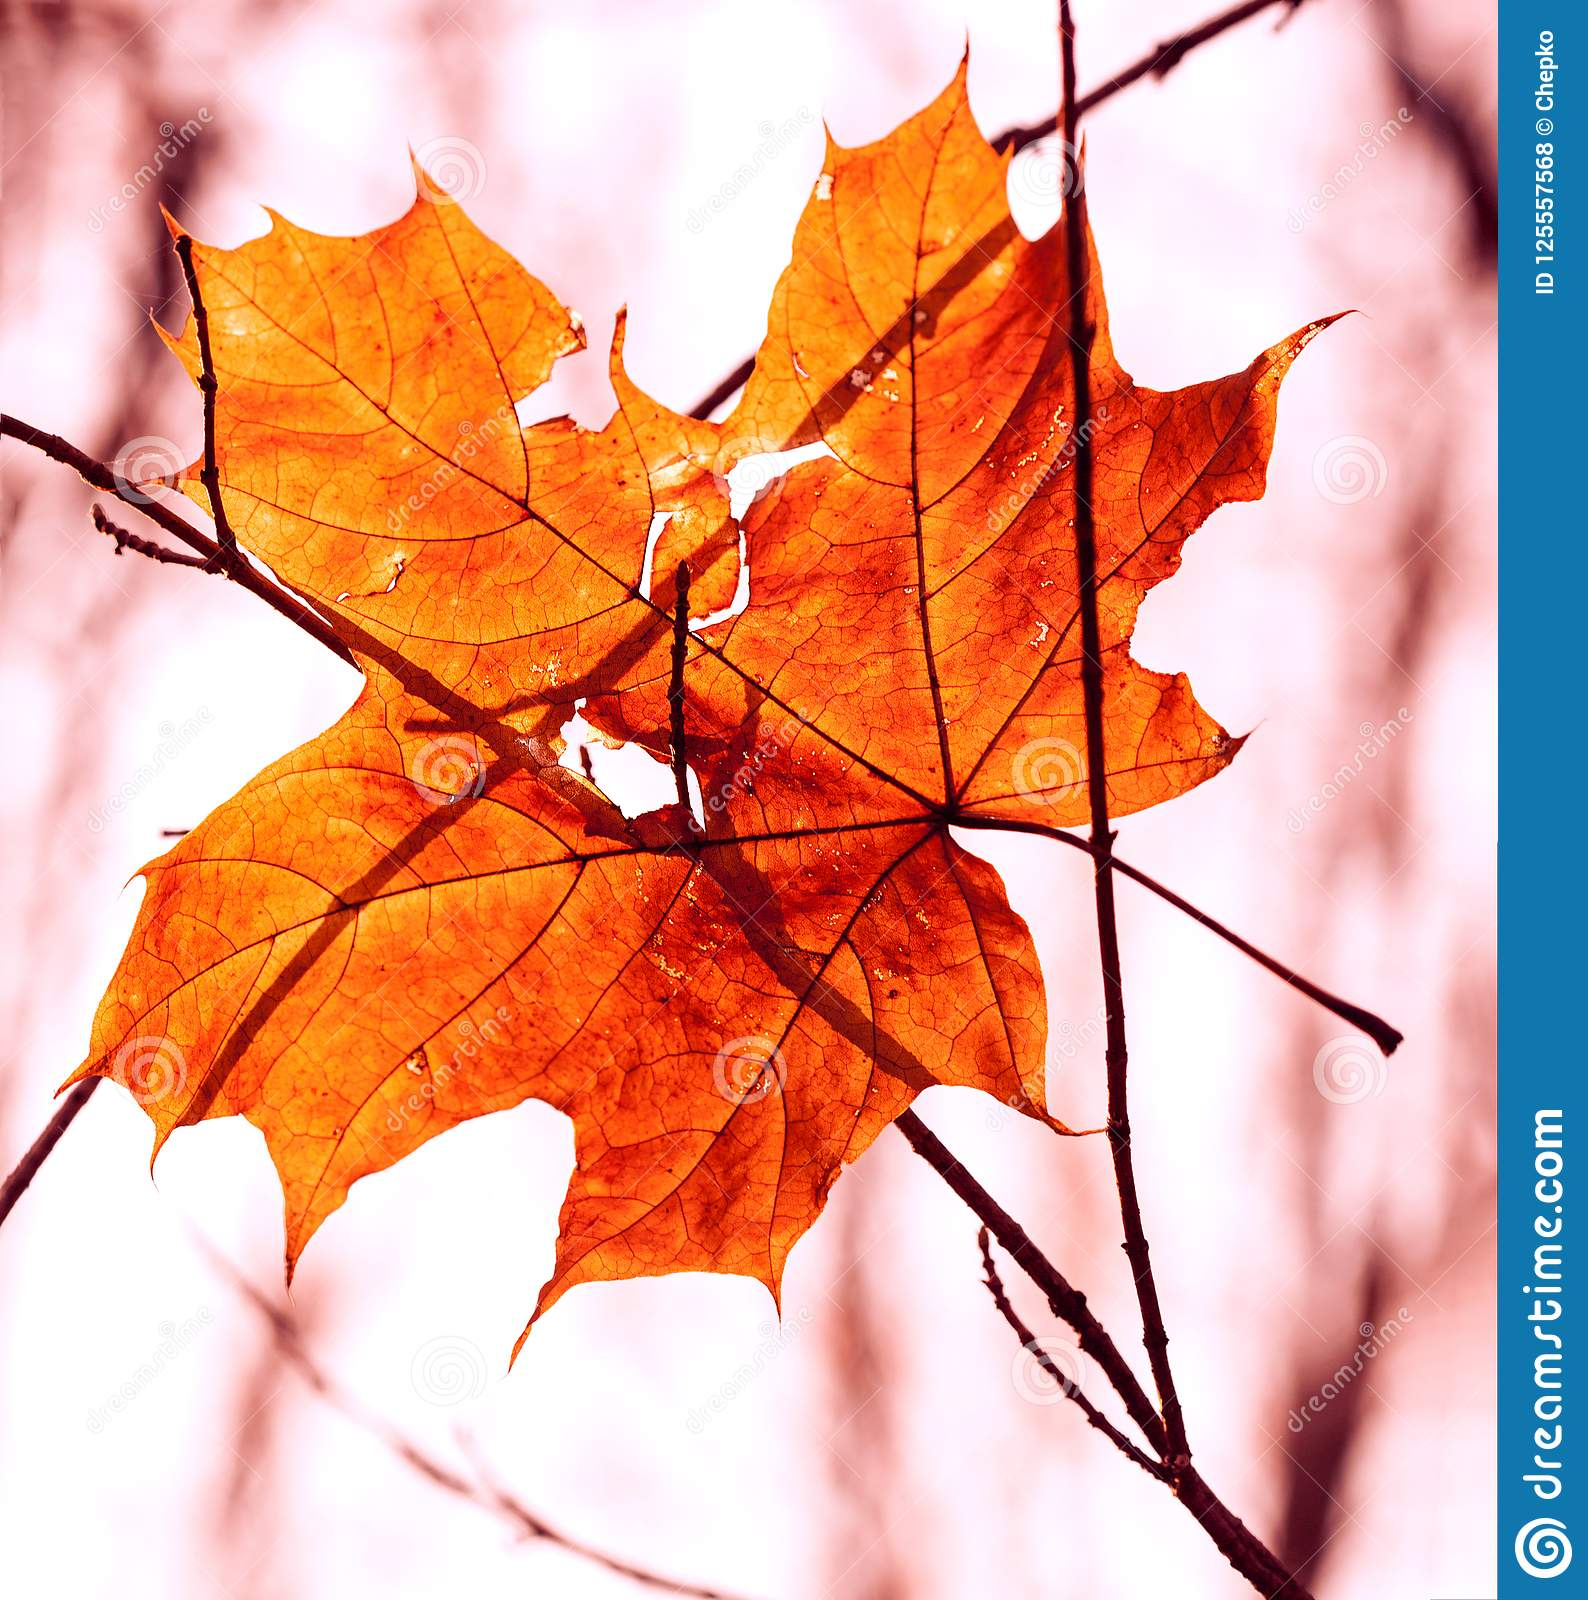 Download Dry Autumn Leaf Stuck In Forest Stock Photo - Image of image, season: 125557568